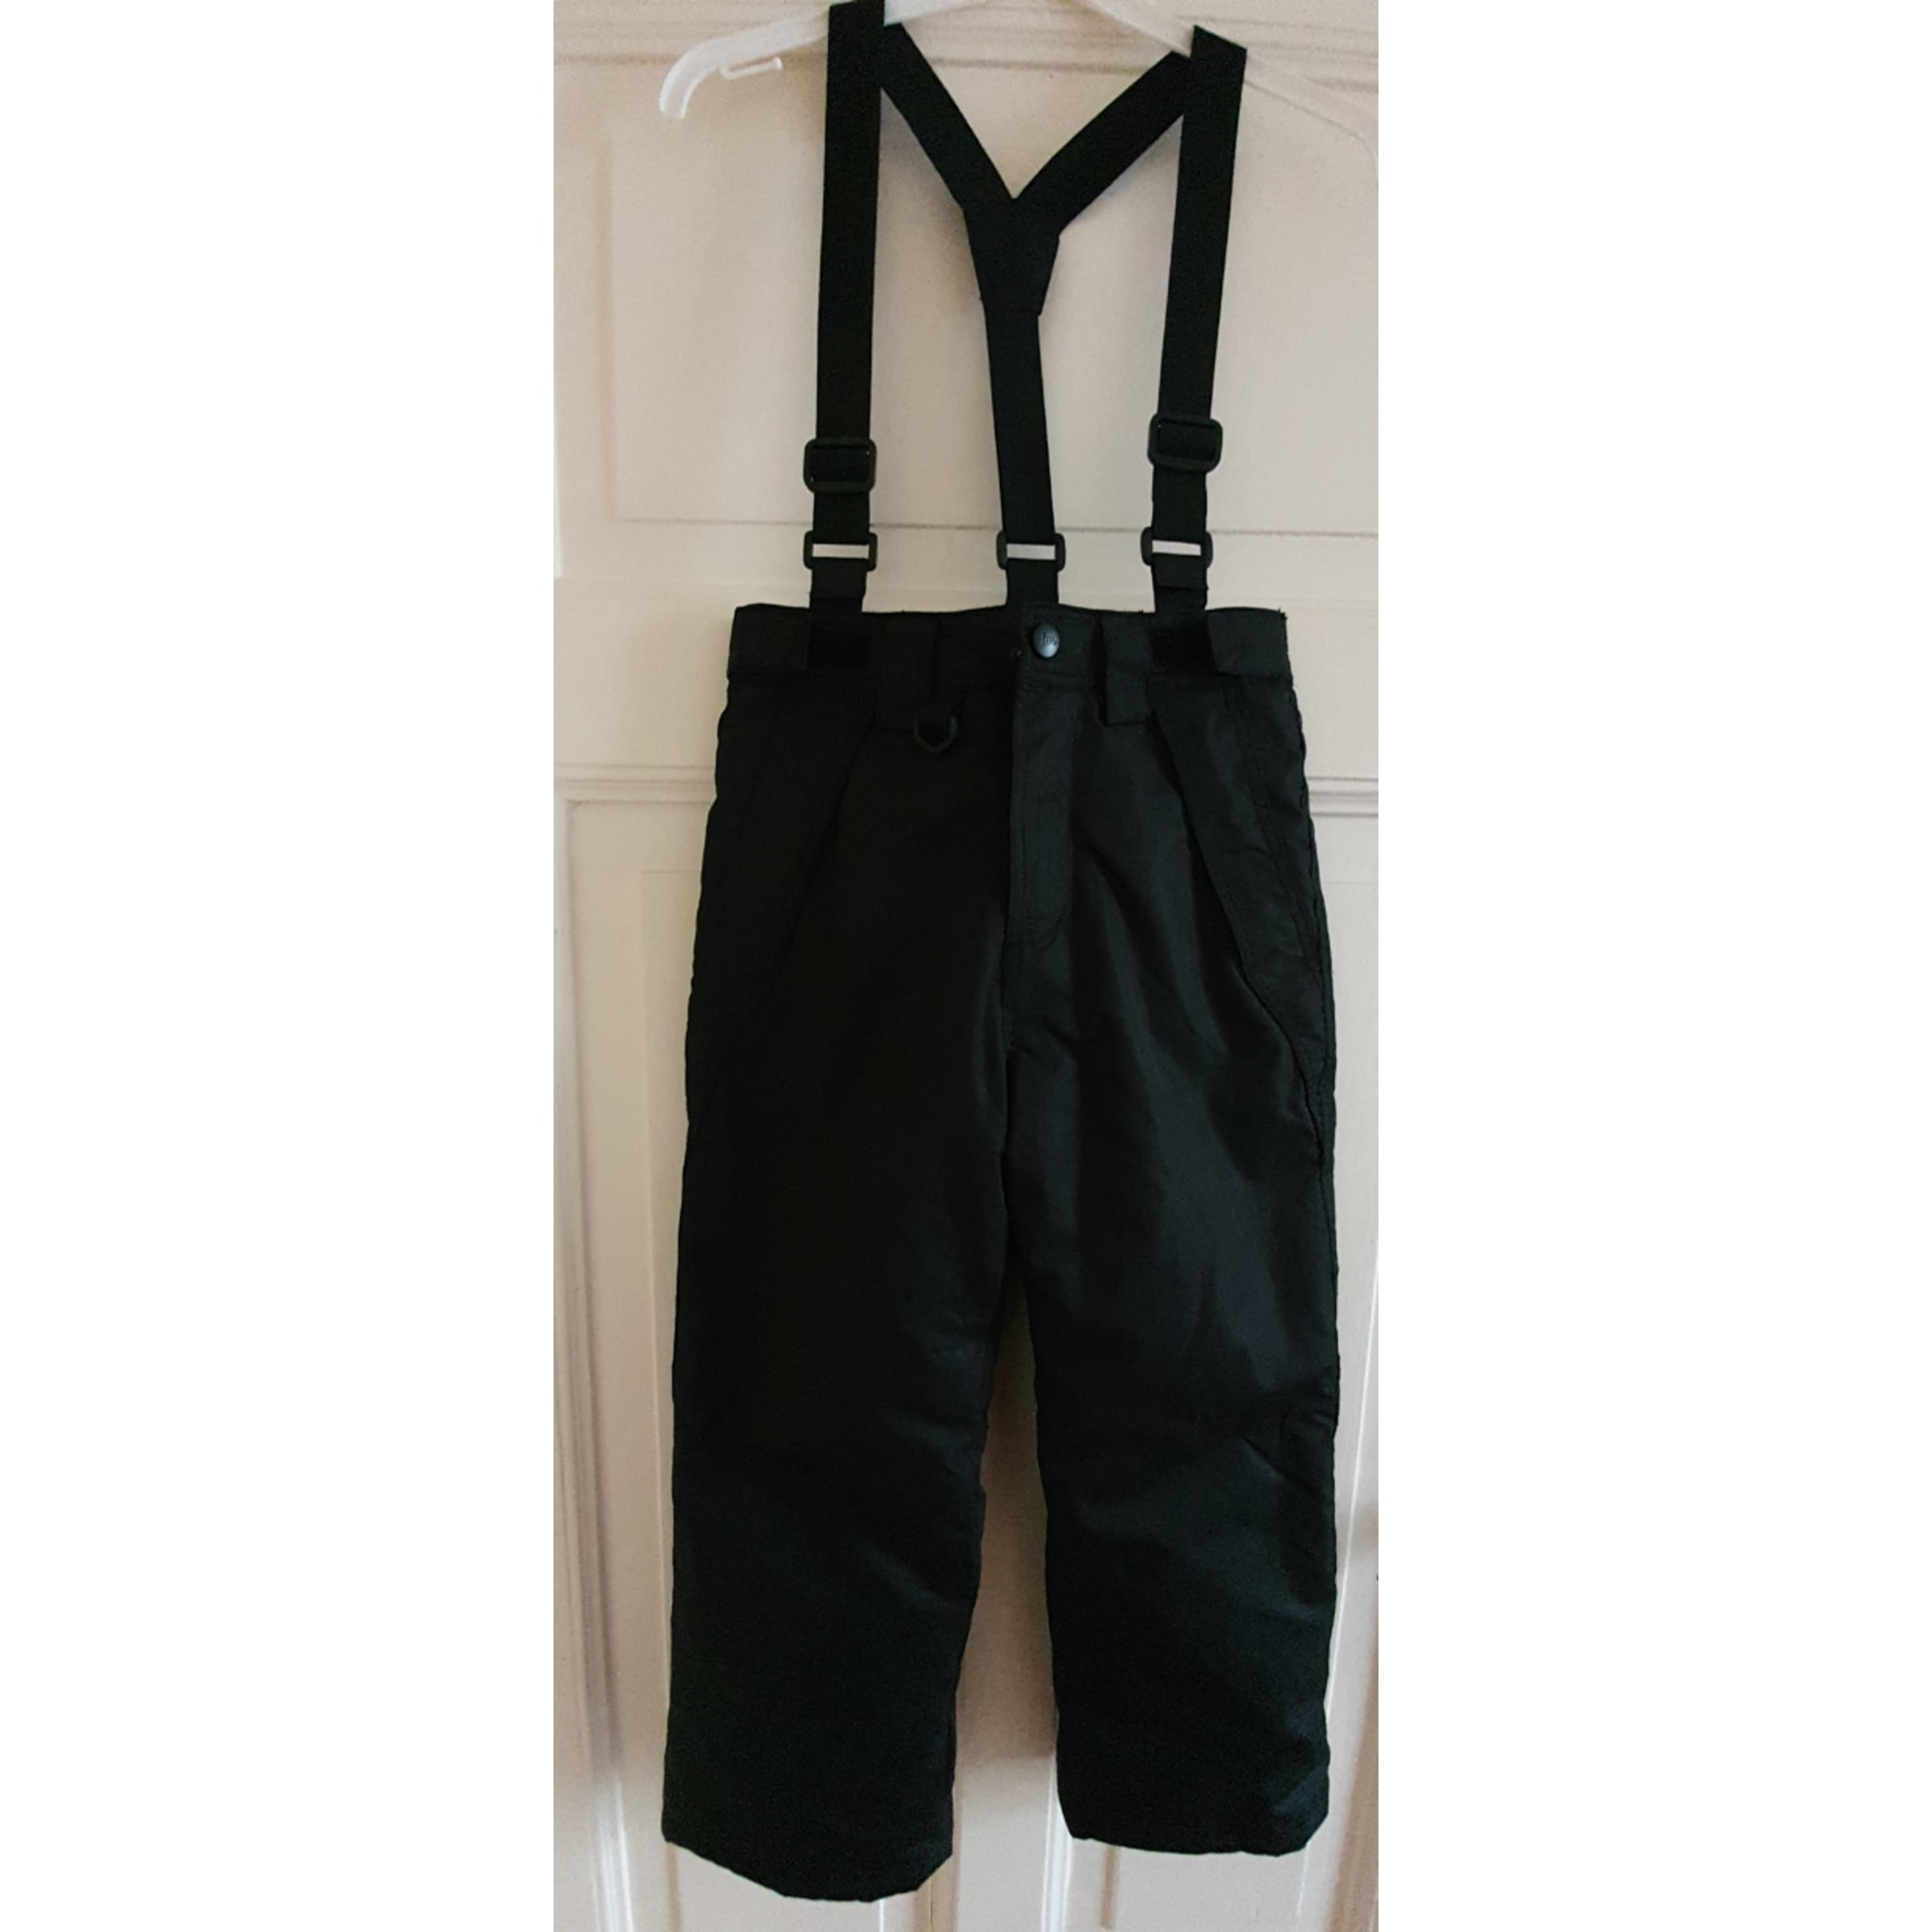 Pants Set, Outfit LONGBOARD Black